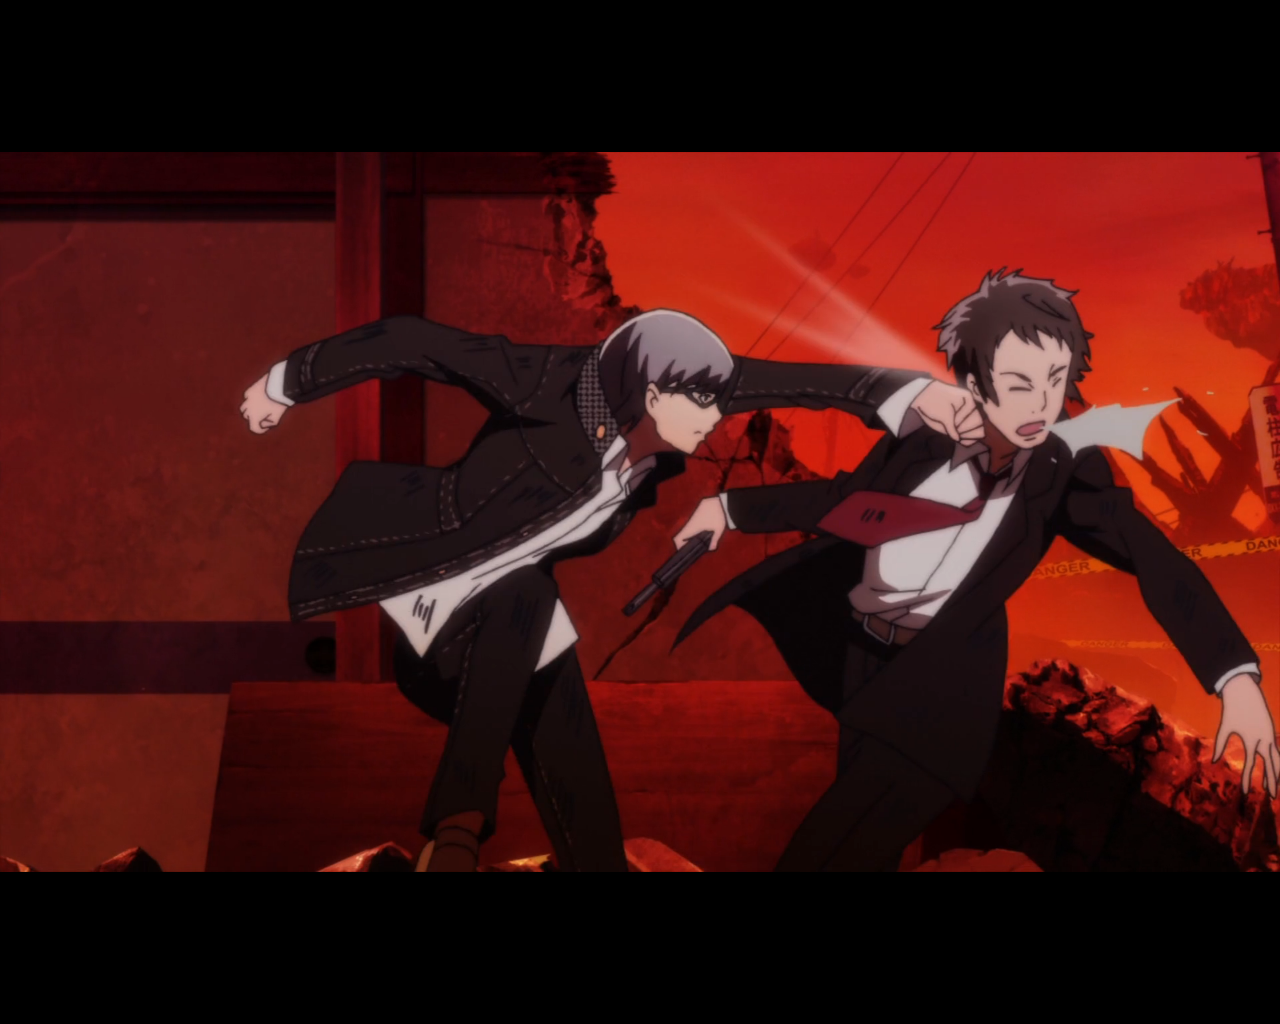 Persona 4 the Golden ANIMATION: Episode 05-07 Review